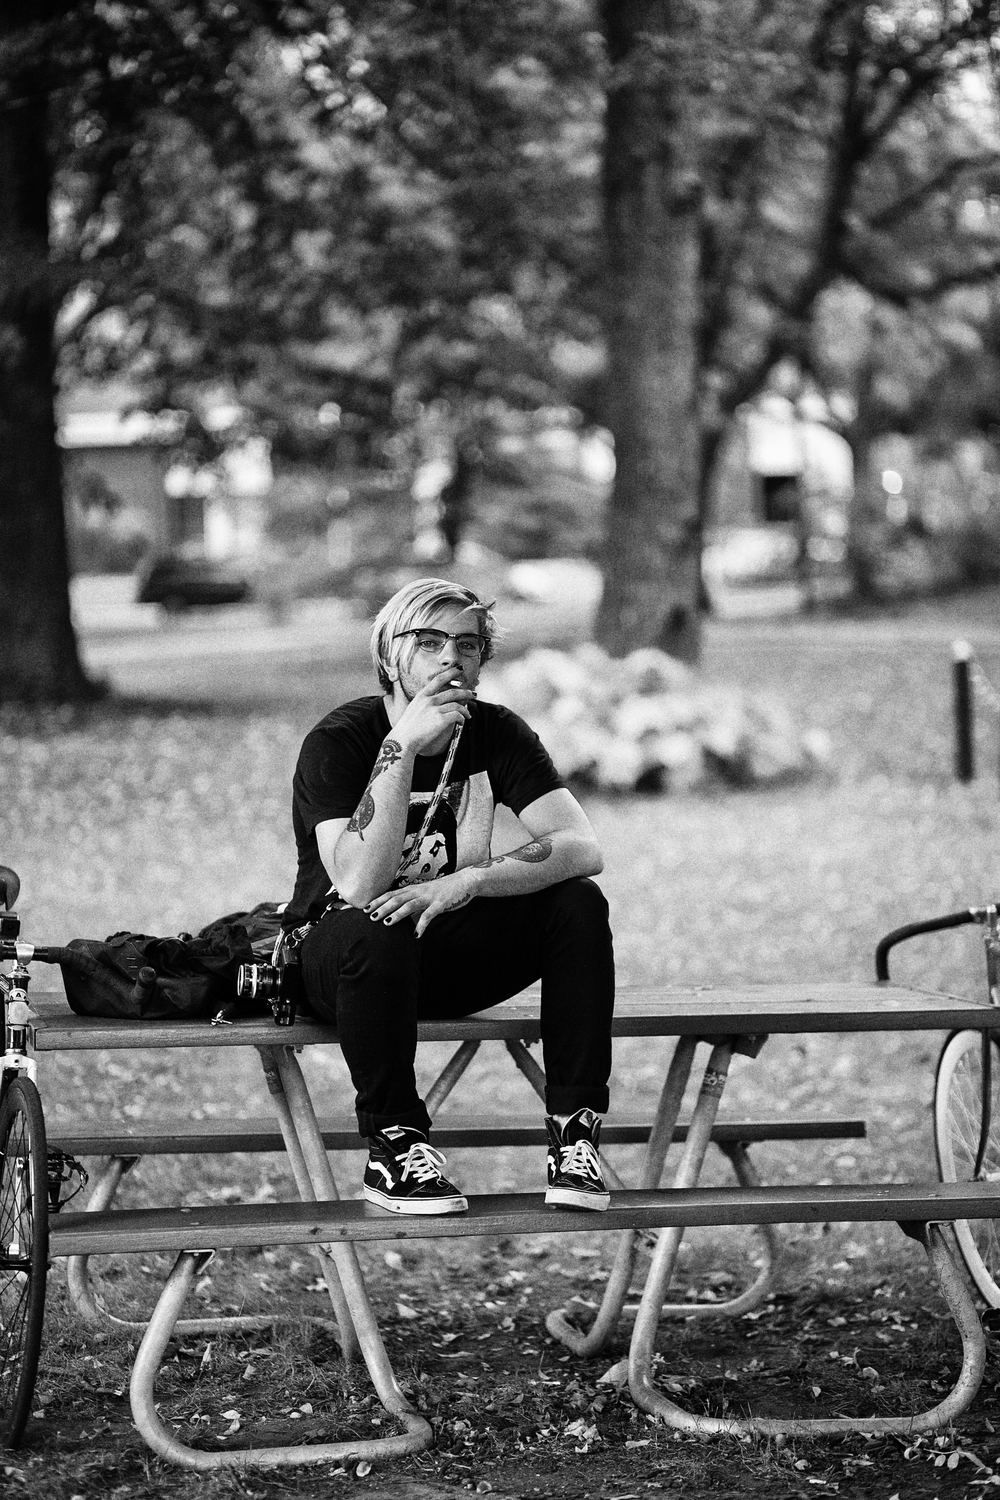 Zak @ the Park BW-3.jpg